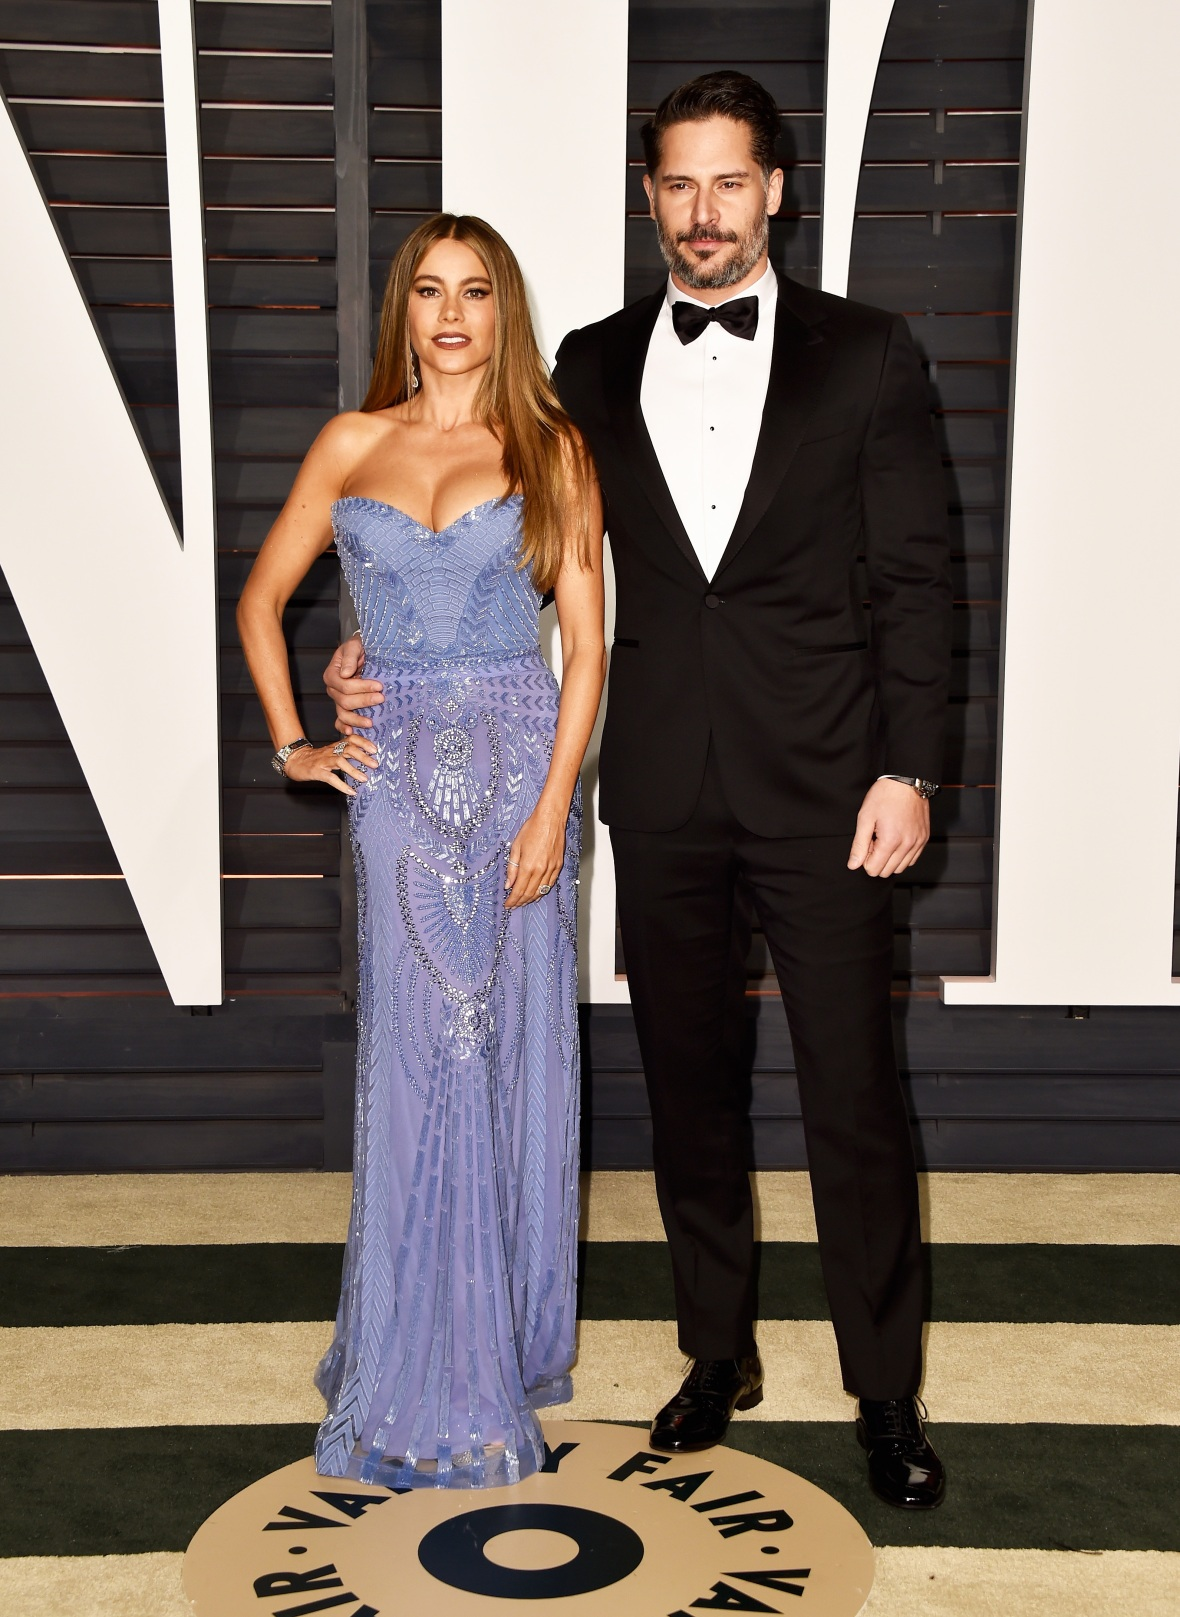 Sofia Vergara and Joe Manganiello's Wedding Delayed ...